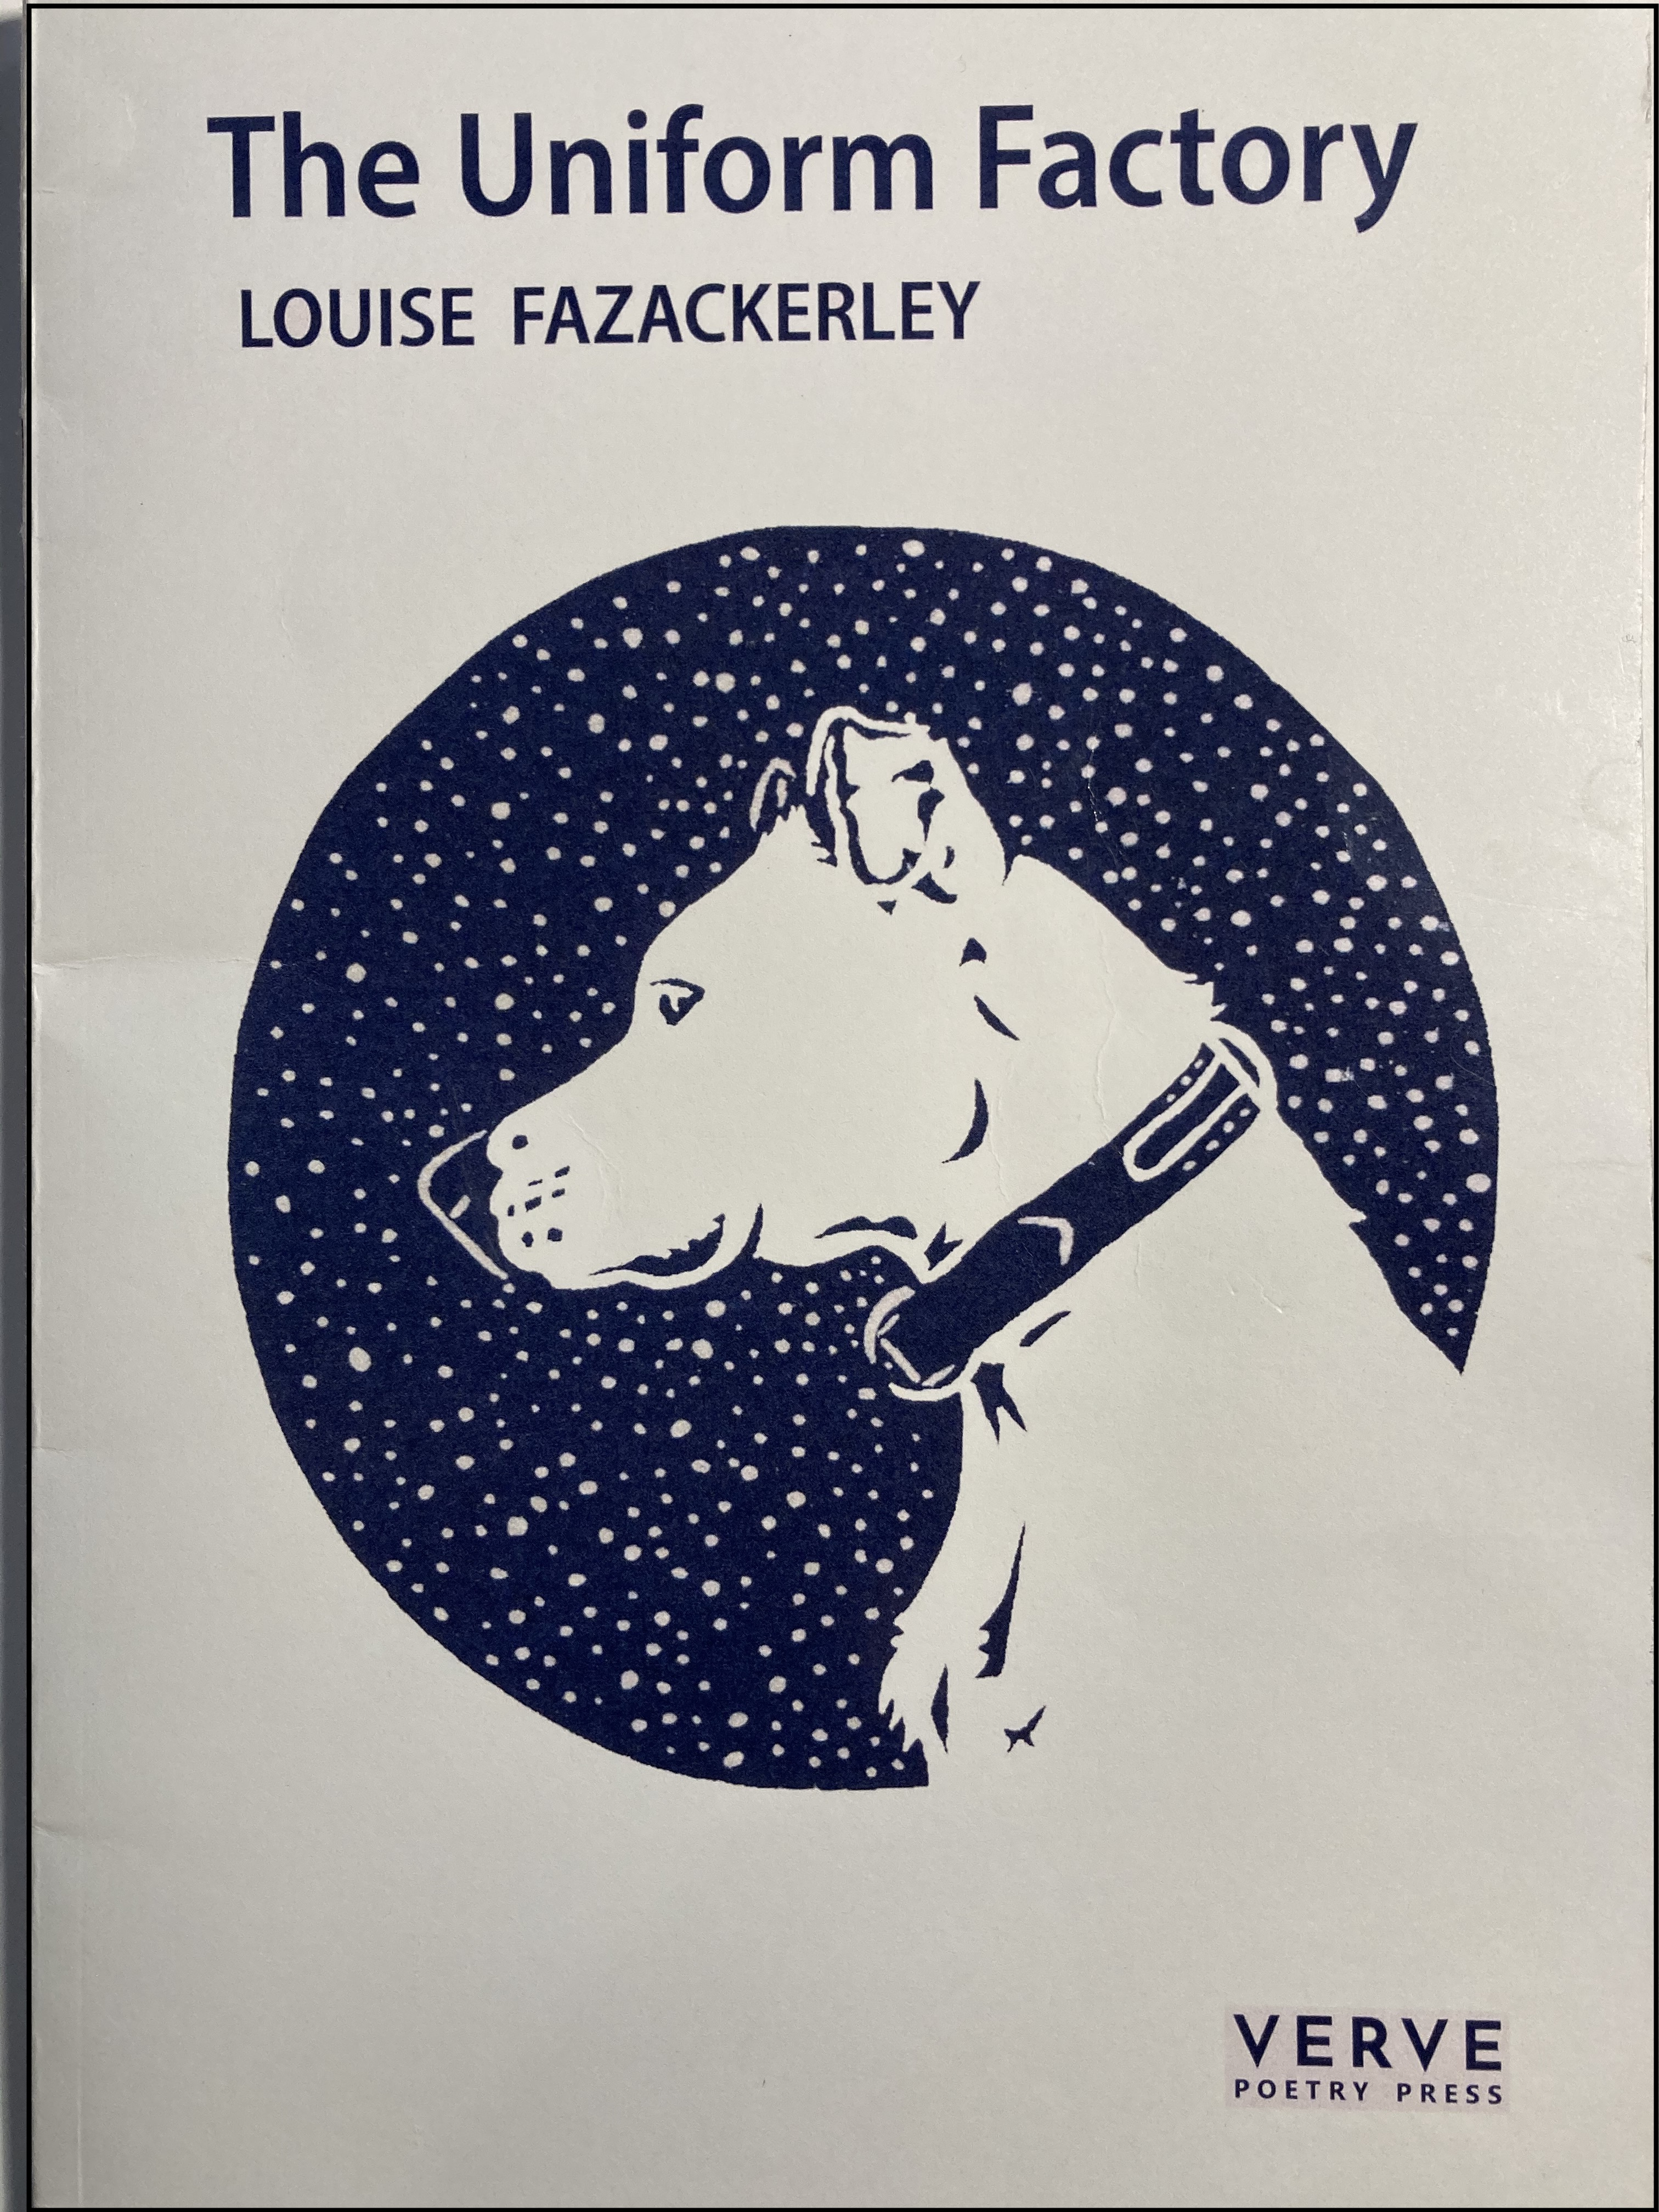 Pale cover with blue lettering and central image: a blue circle with a white dog and spots like snow